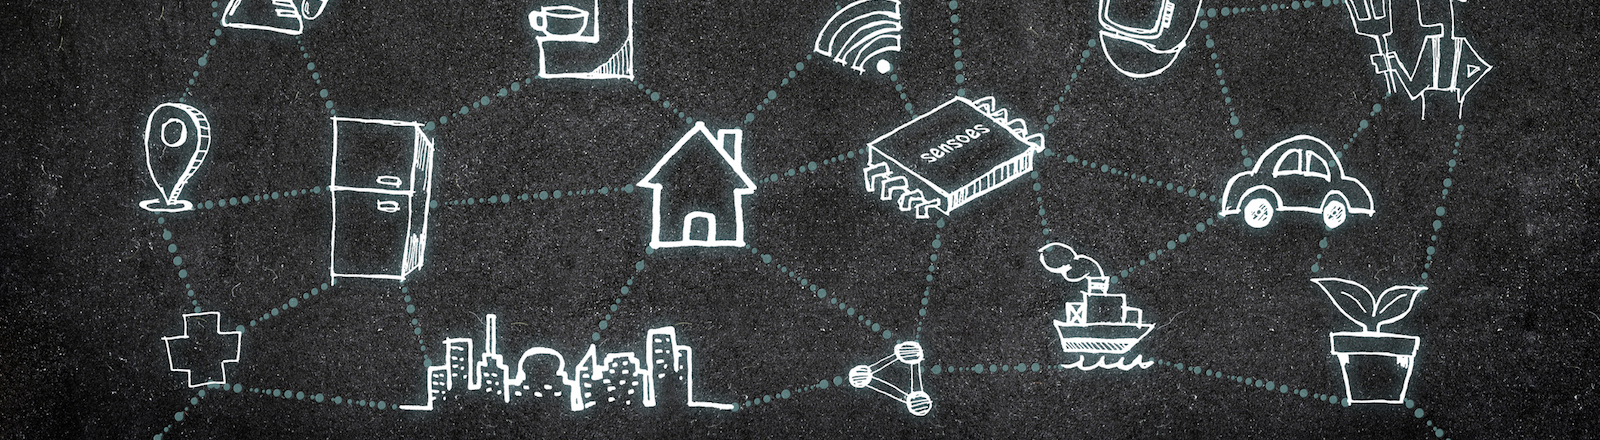 Internet of Things (IoT) word on wood floor with doodle icon on blackboard wall,Technology Concept Design.